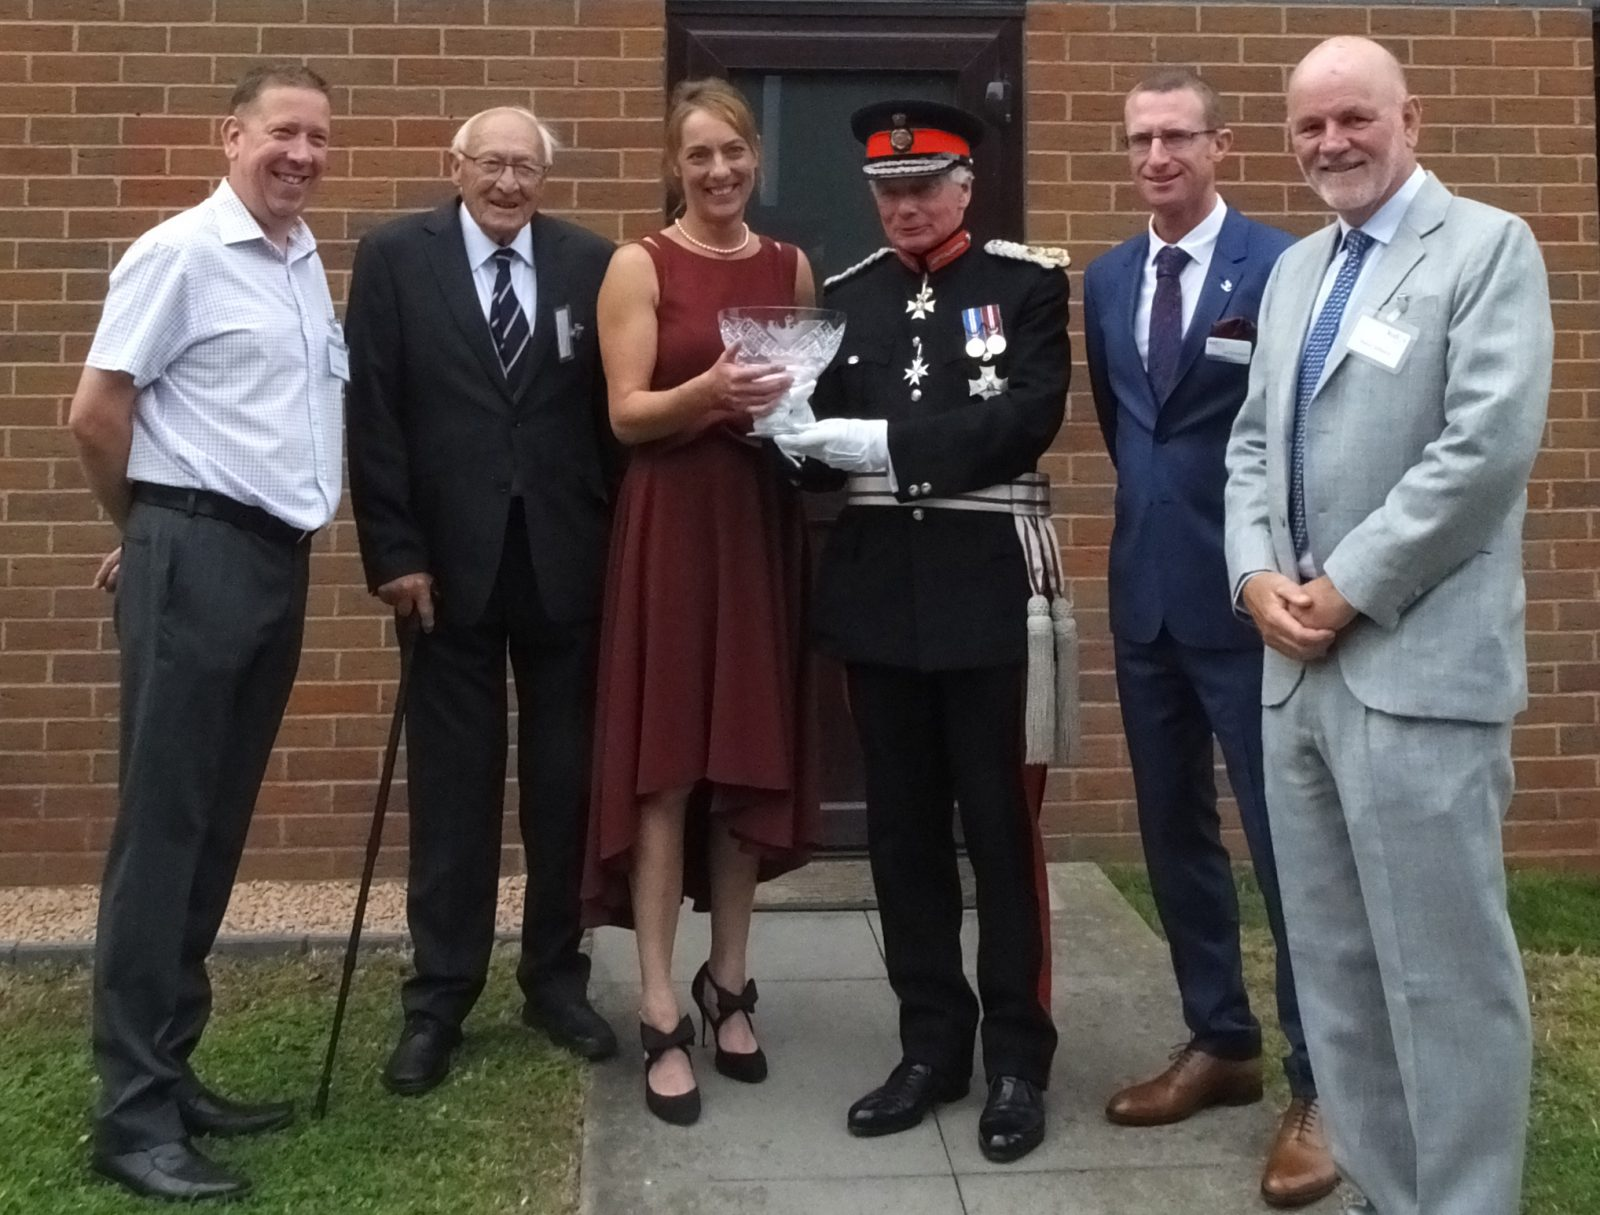 "Kudos Blends, based in Cleobury Mortimer, Shropshire celebrate a Queen's Award for Enterprise in the category of International Trade. The award was presented by Sir Algernon Heber-Percy, Lord Lieutenant of Shropshire at a champagne reception. Pictured here, Dinnie Jordan (founder and MD) accepts the award, accompanied by honoured guests, the very closest ""Friends of Kudos""."